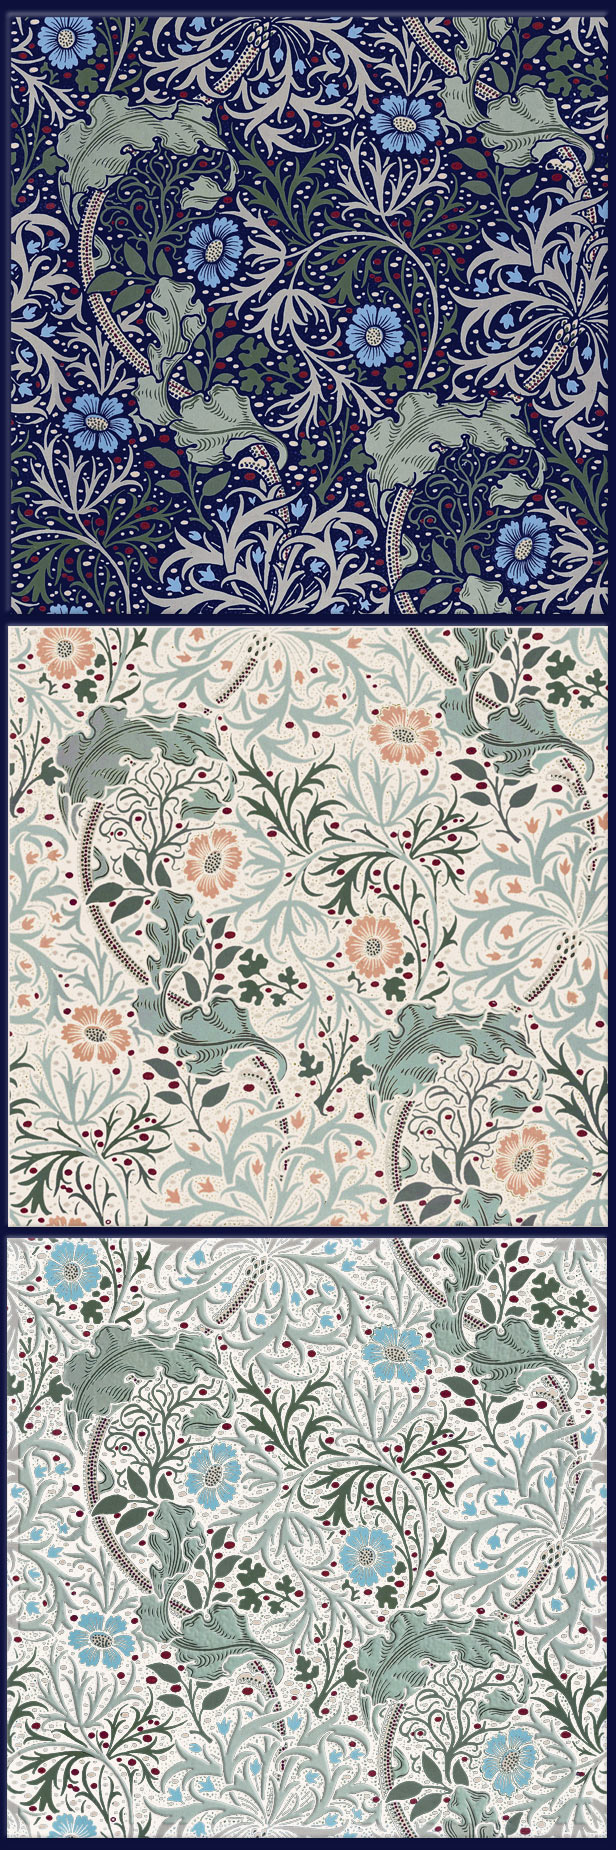 William Morris Seaweed variations, tiles from textiles, 6 x 6 inches